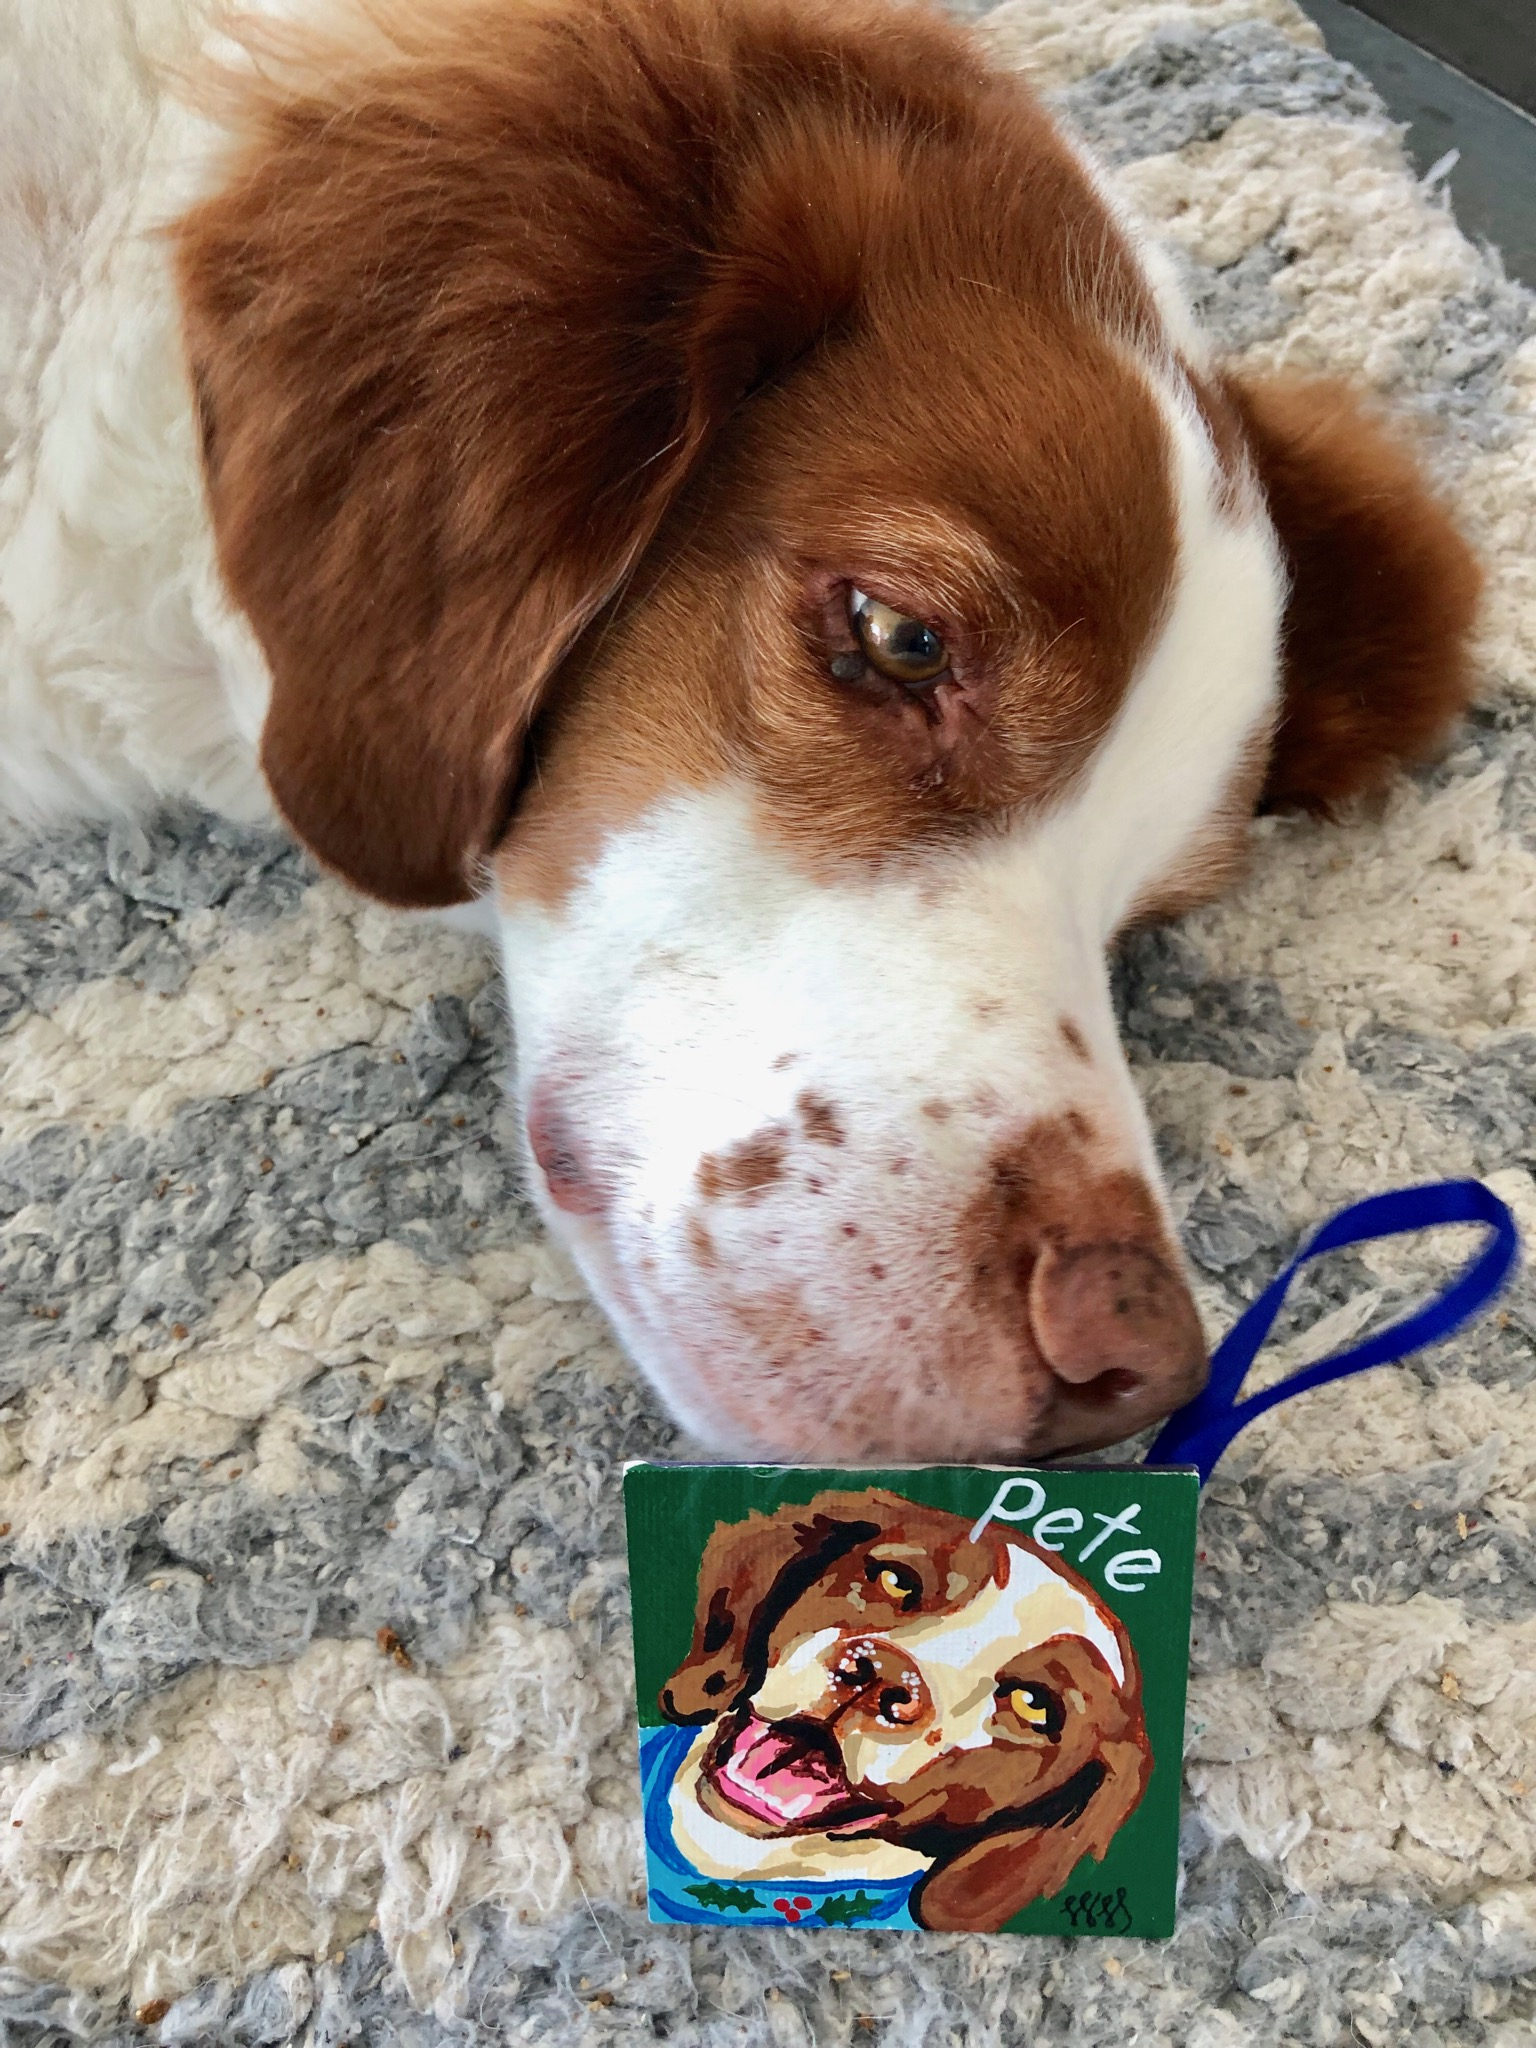 Pete with his ornament